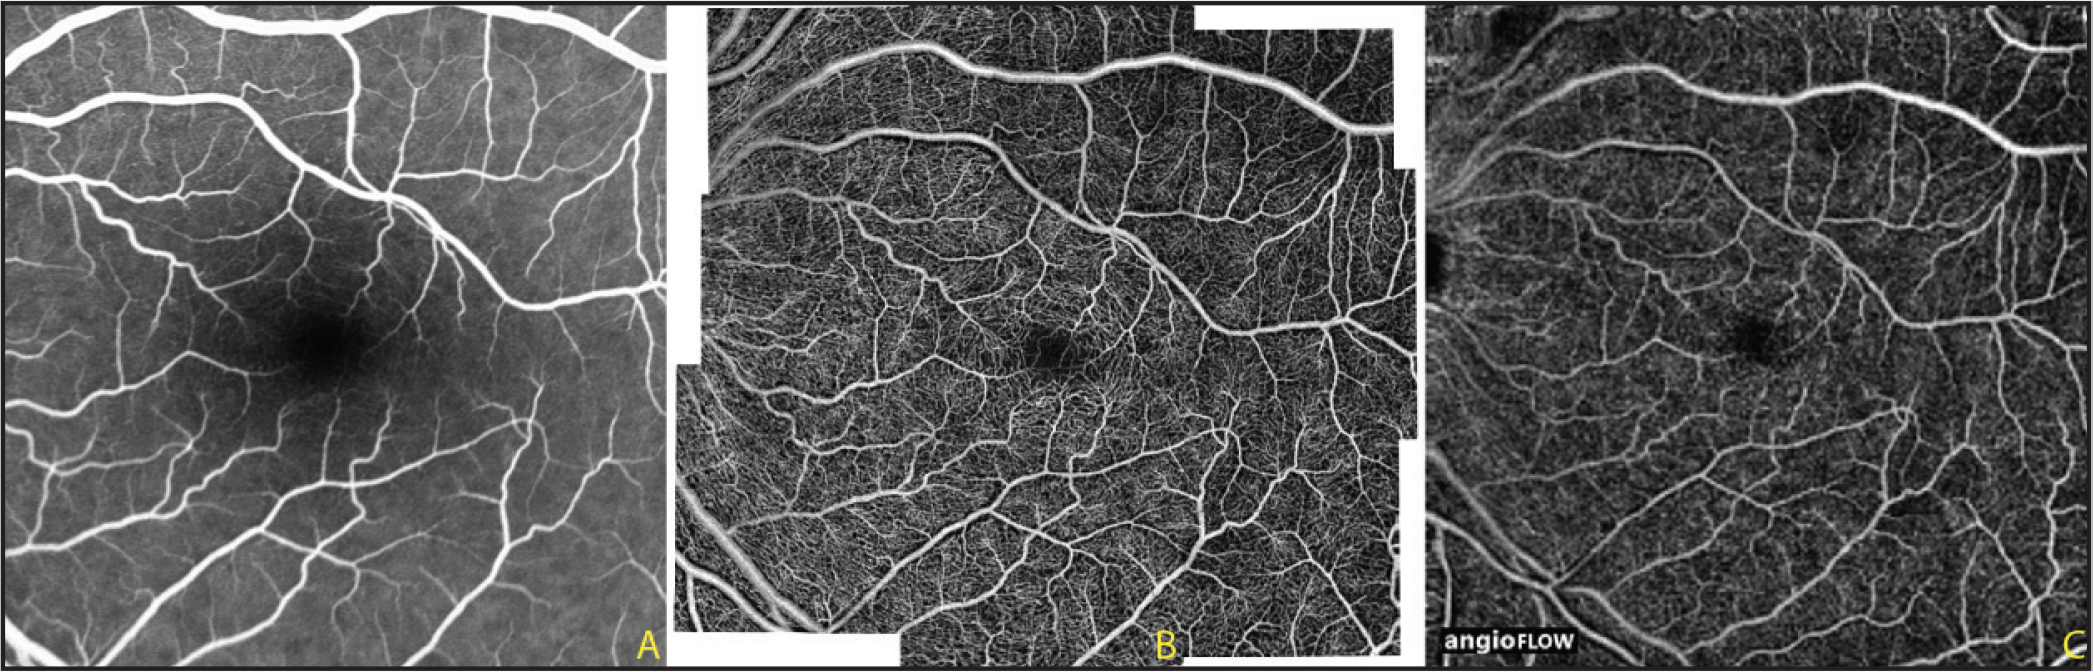 Case 1. The left eye of a 56-year-old man with a normal retina. (A) Fluorescein angiography appears normal, showing the larger retinal vessels. (B) The wide-field montage OCT angiography (OCTA) image clearly delineates the normal retinal vasculature including the smaller capillaries. (C) A single-scan 8 × 8–mm OCTA image shows the larger retinal vessels and some of the smaller capillaries but detailed visualization of the capillary plexus is not feasible.